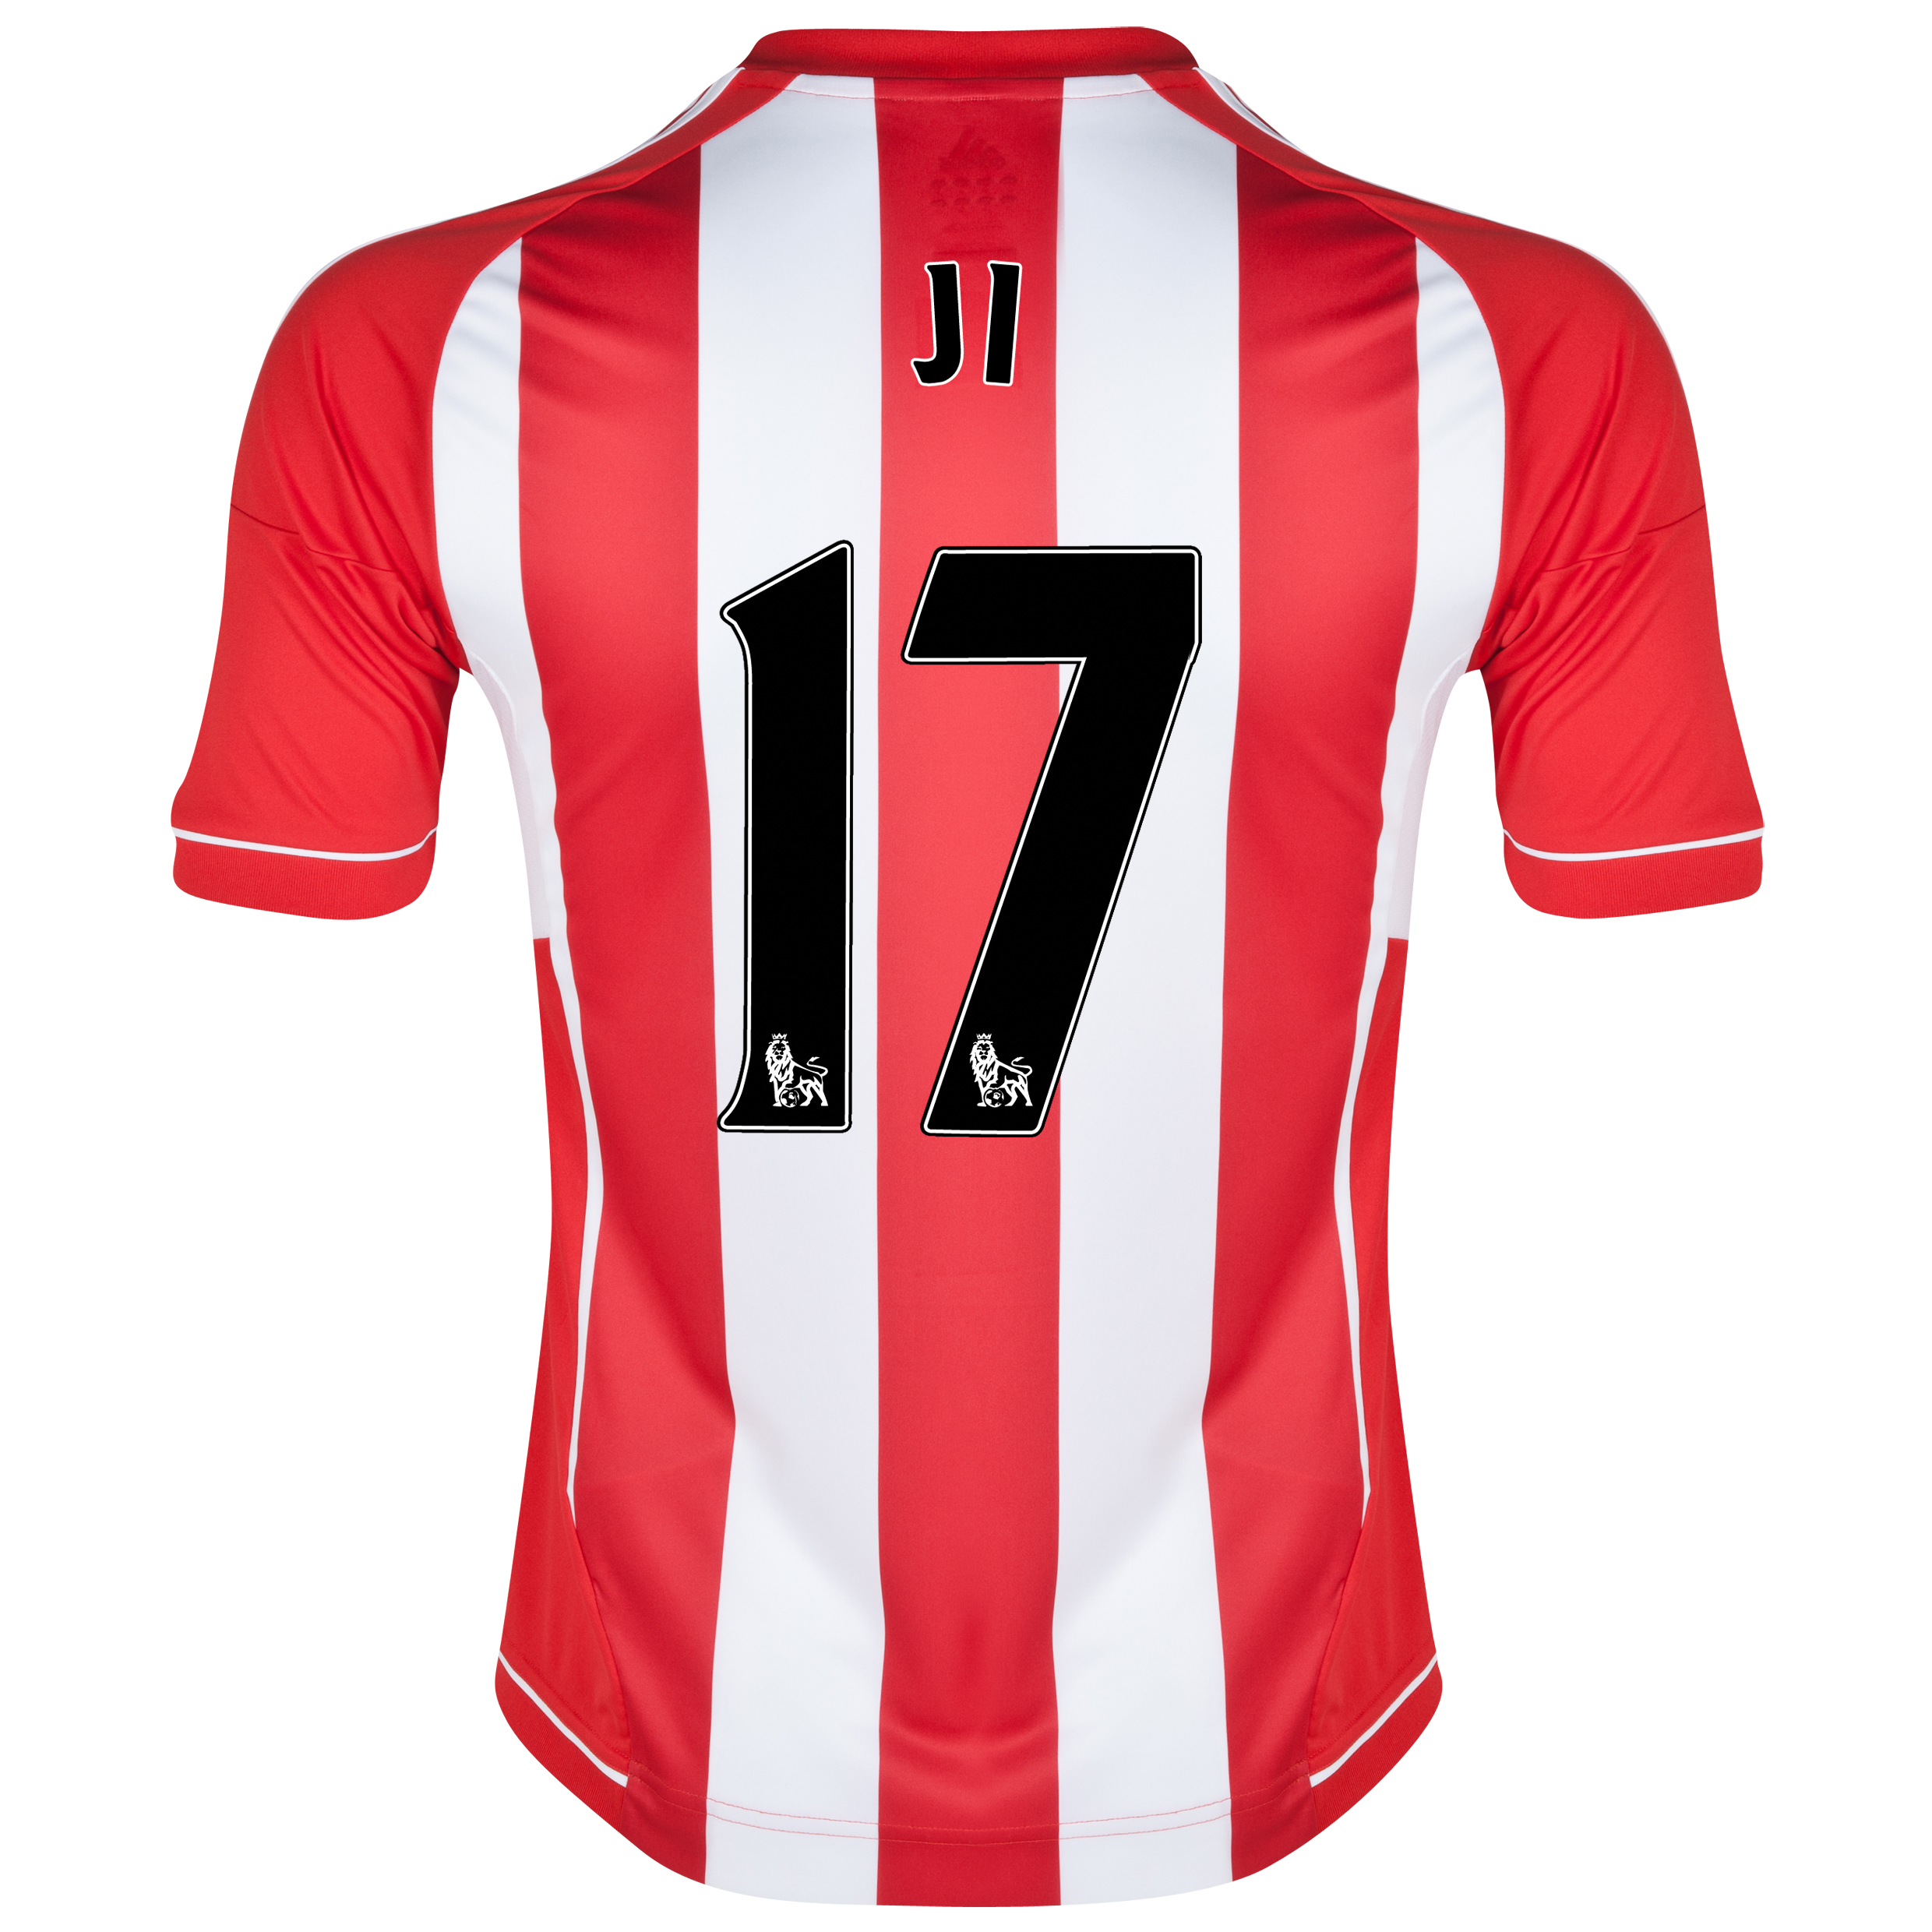 Sunderland Home Shirt 2012/13 - Junior with Ji 17 printing